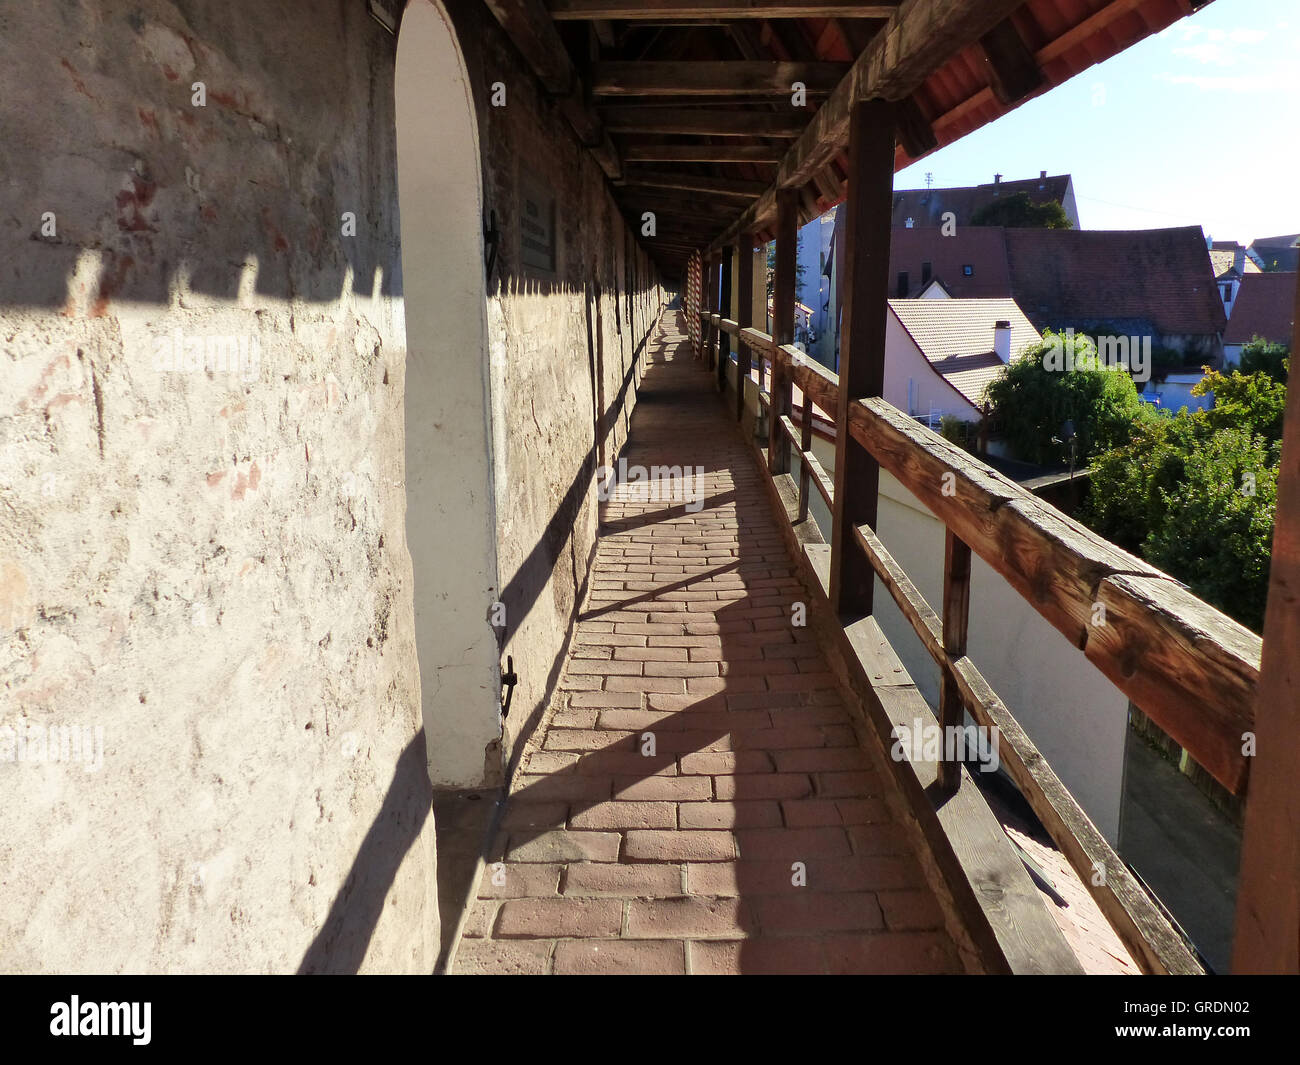 The City Wall In Noerdlingen Leads Around The Old City, Bavaria, Germany - Stock Image